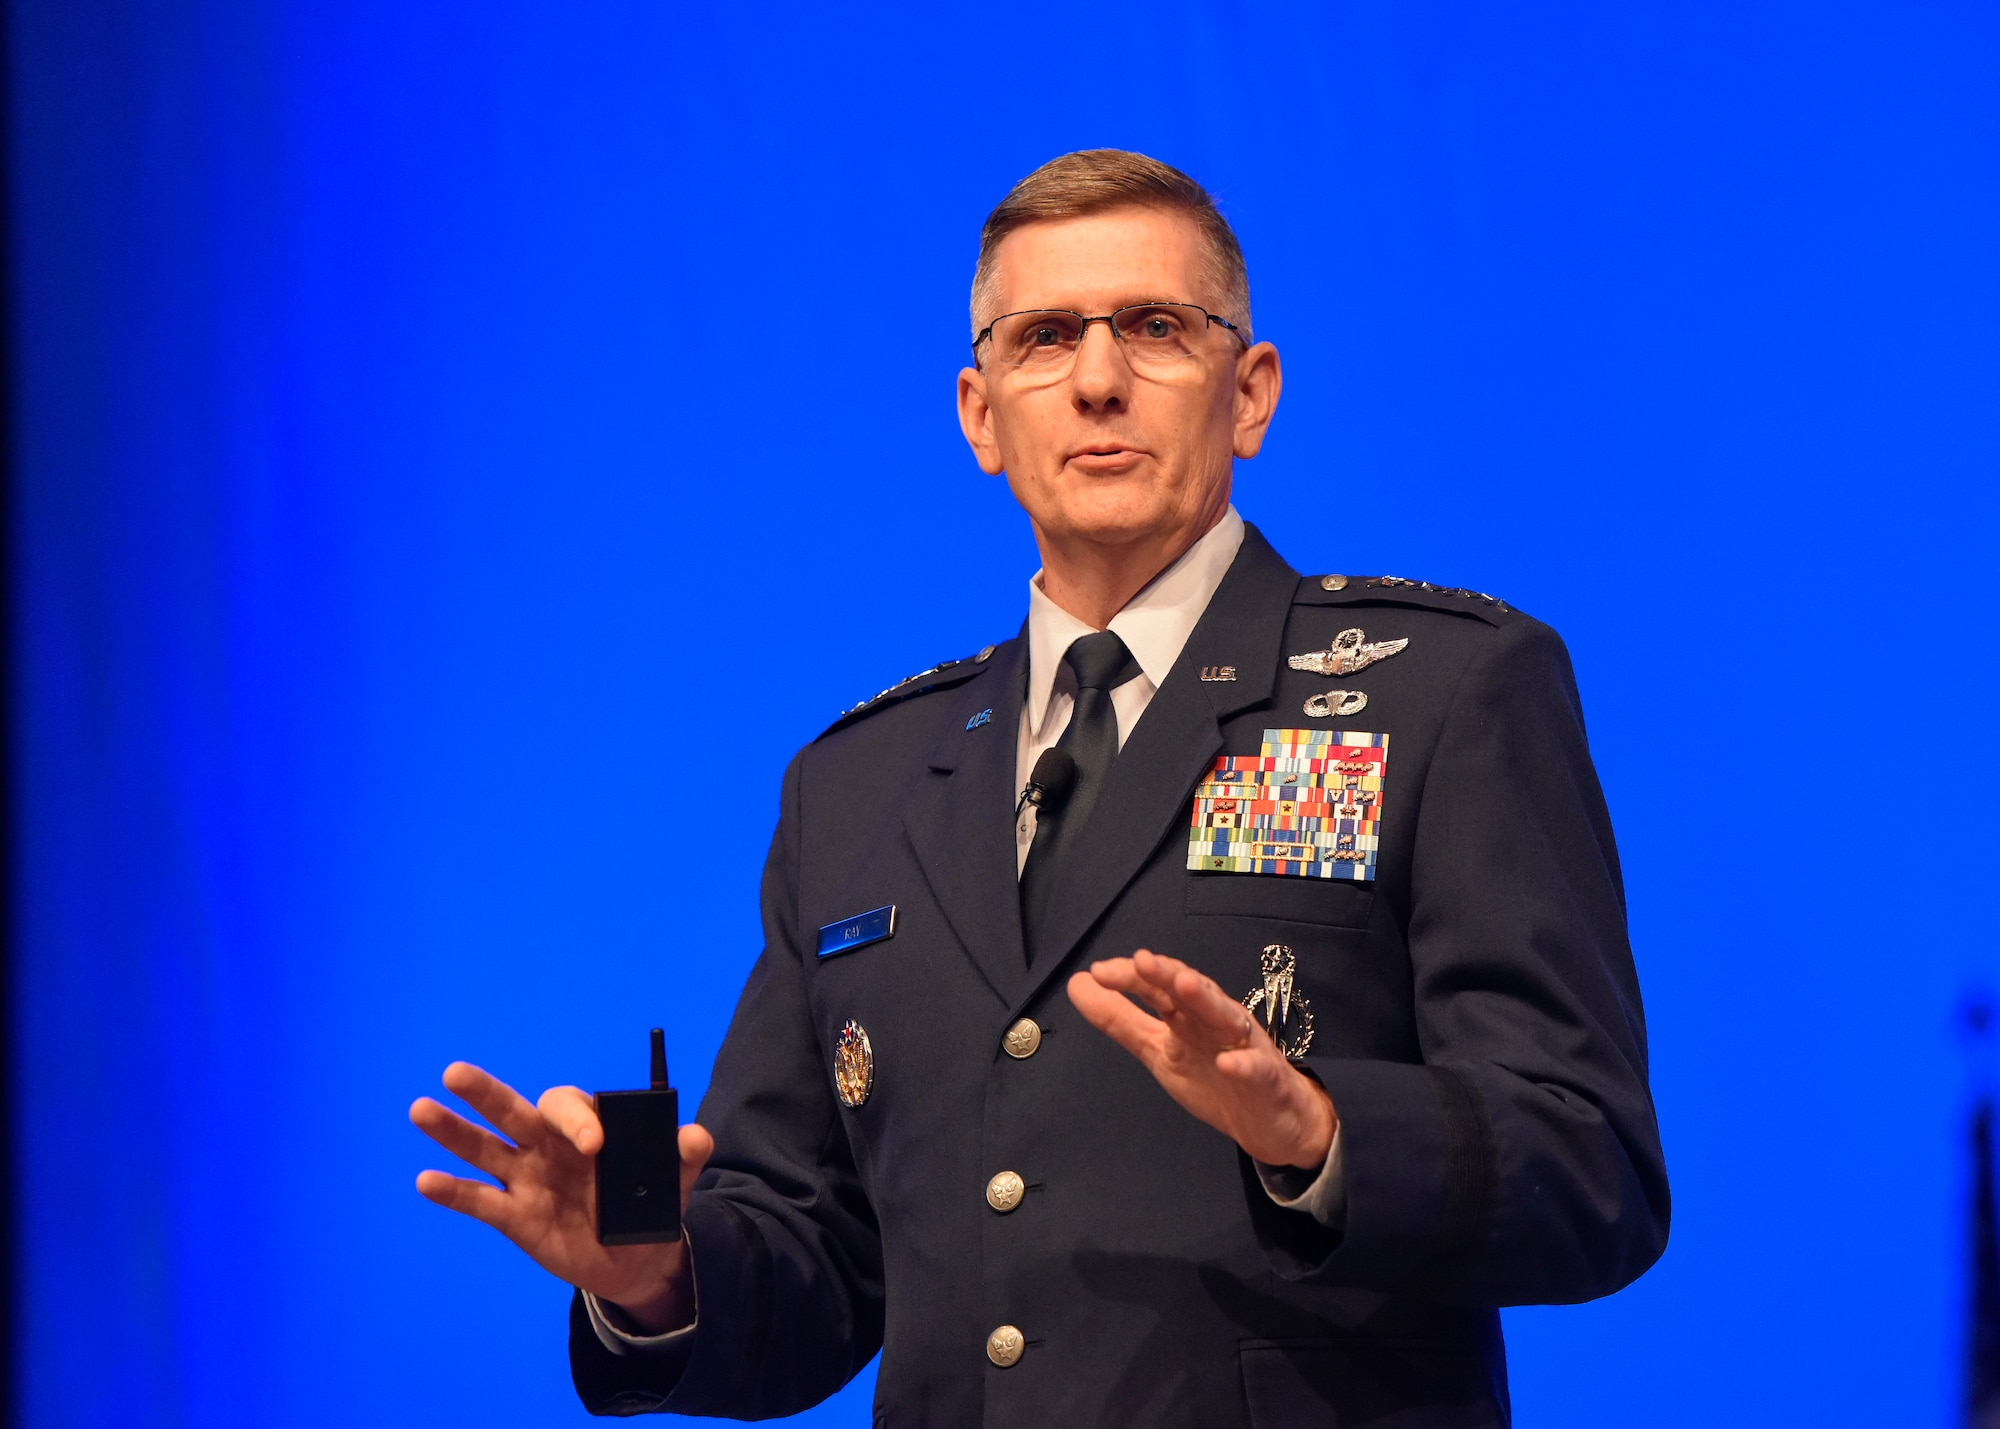 """Gen. Tim Ray, Air Force Global Strike Command commander, discusses """"Global Strike – The Critical Competitive Edge"""" during the Air Force Association Air, Space and Cyber Conference in National Harbor, Md., Sept. 17, 2019. From engaging speakers and panels focused on airpower, space, and cyber developments, to the technology exposition featuring the latest technology, equipment, and solutions for tomorrow's problems, the conference has something for everyone. (U.S. Air Force photo by Staff Sgt. Jeremy L. Mosier)"""